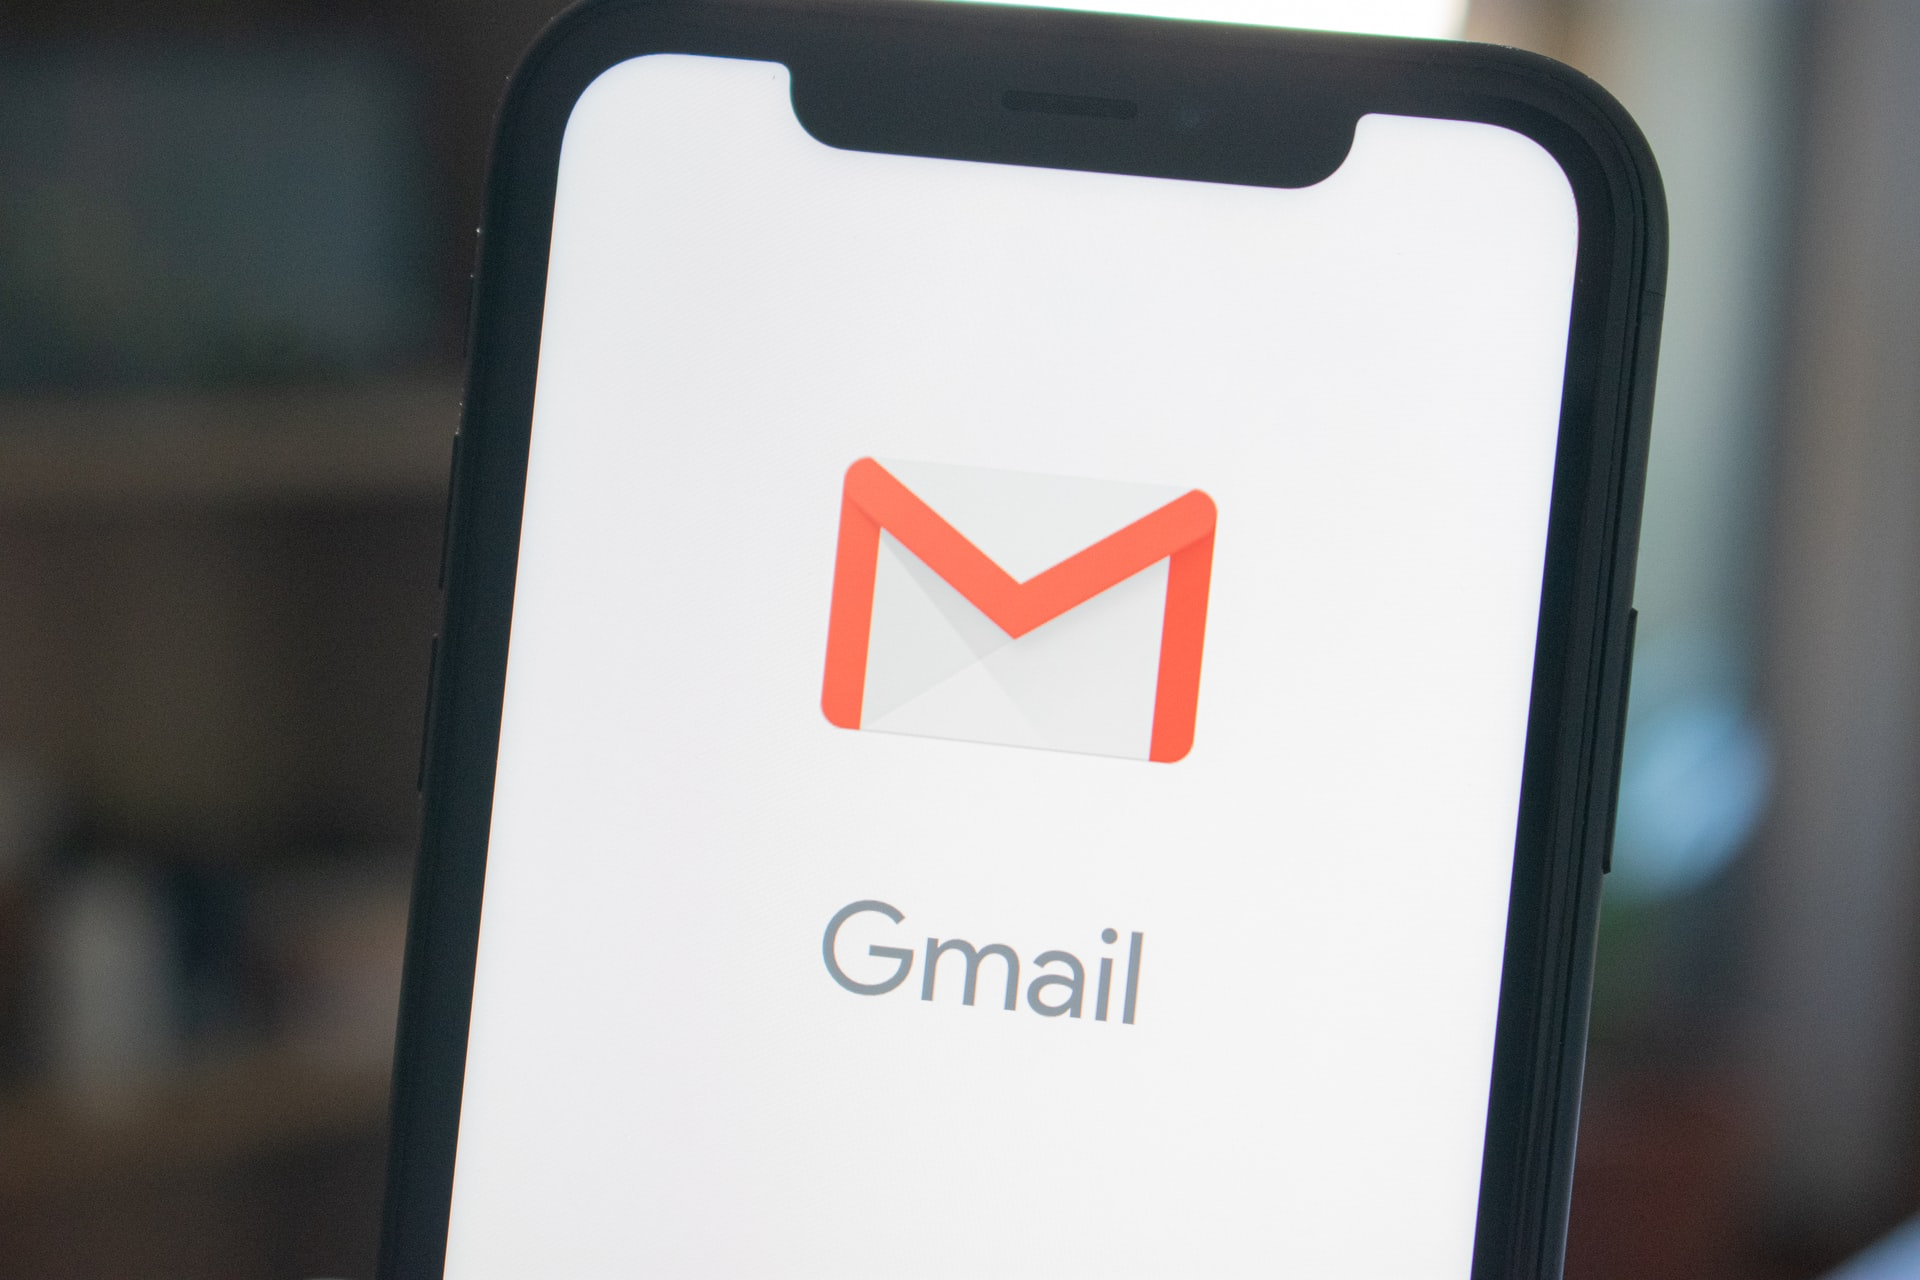 Gmail icon on phone